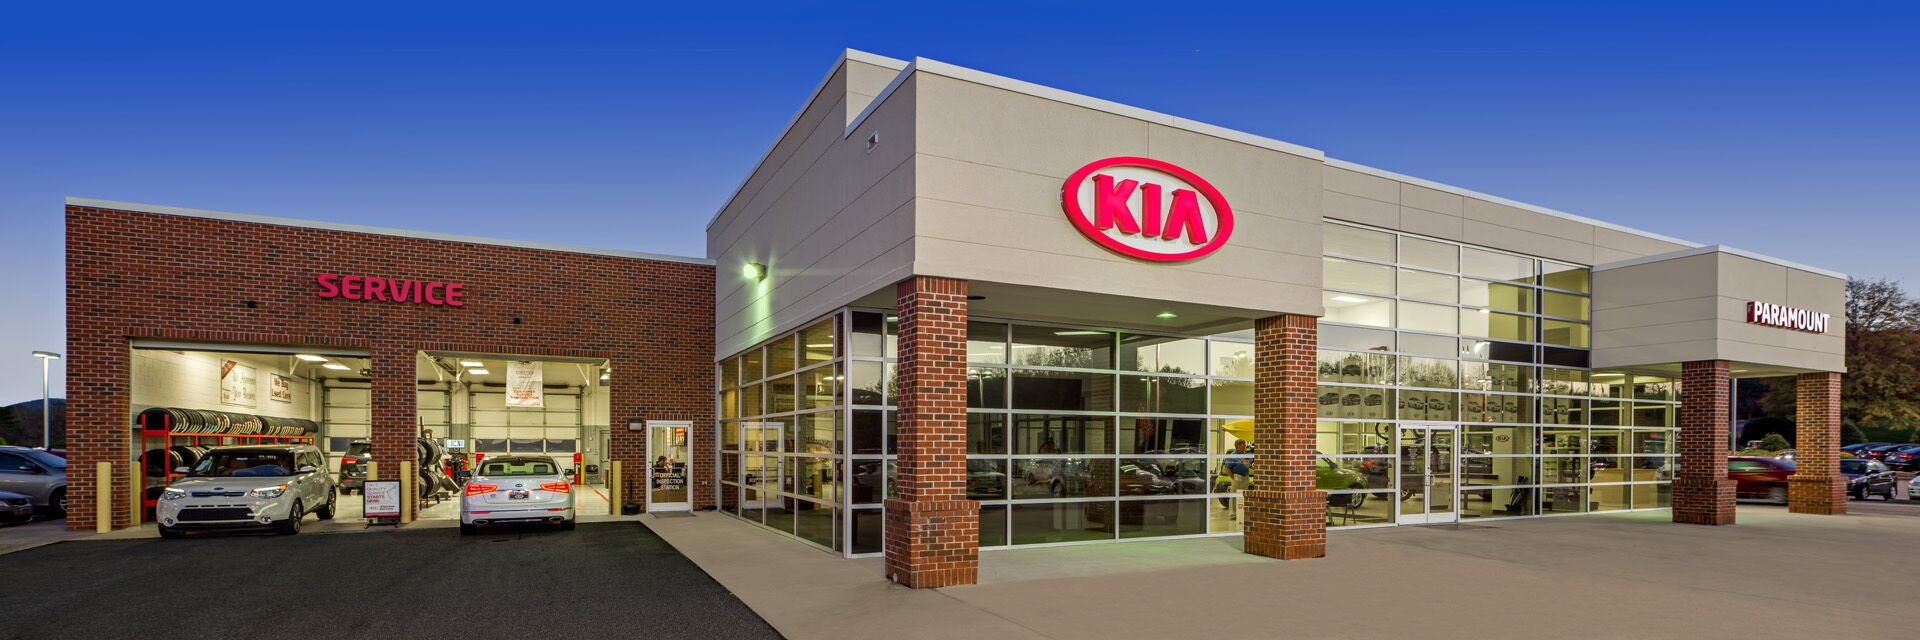 honda in service dealerships automall new shelby kia nc dealership htm renaldo index welcome